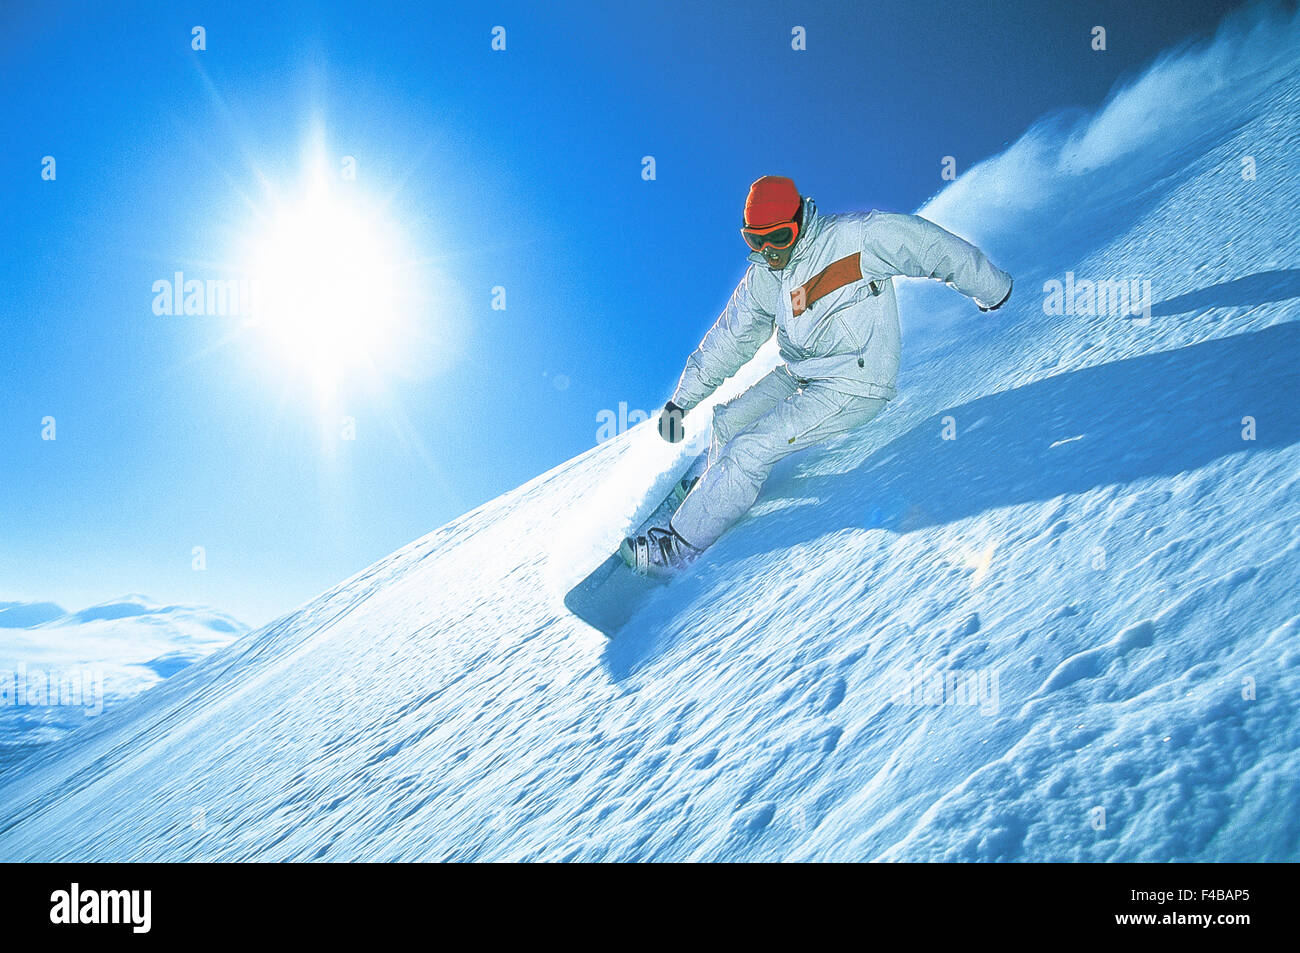 Abisko activity blue catalogue 2 clear sky color image downhill skiing horizontal Lapland leisure lifestyle loose - Stock Image